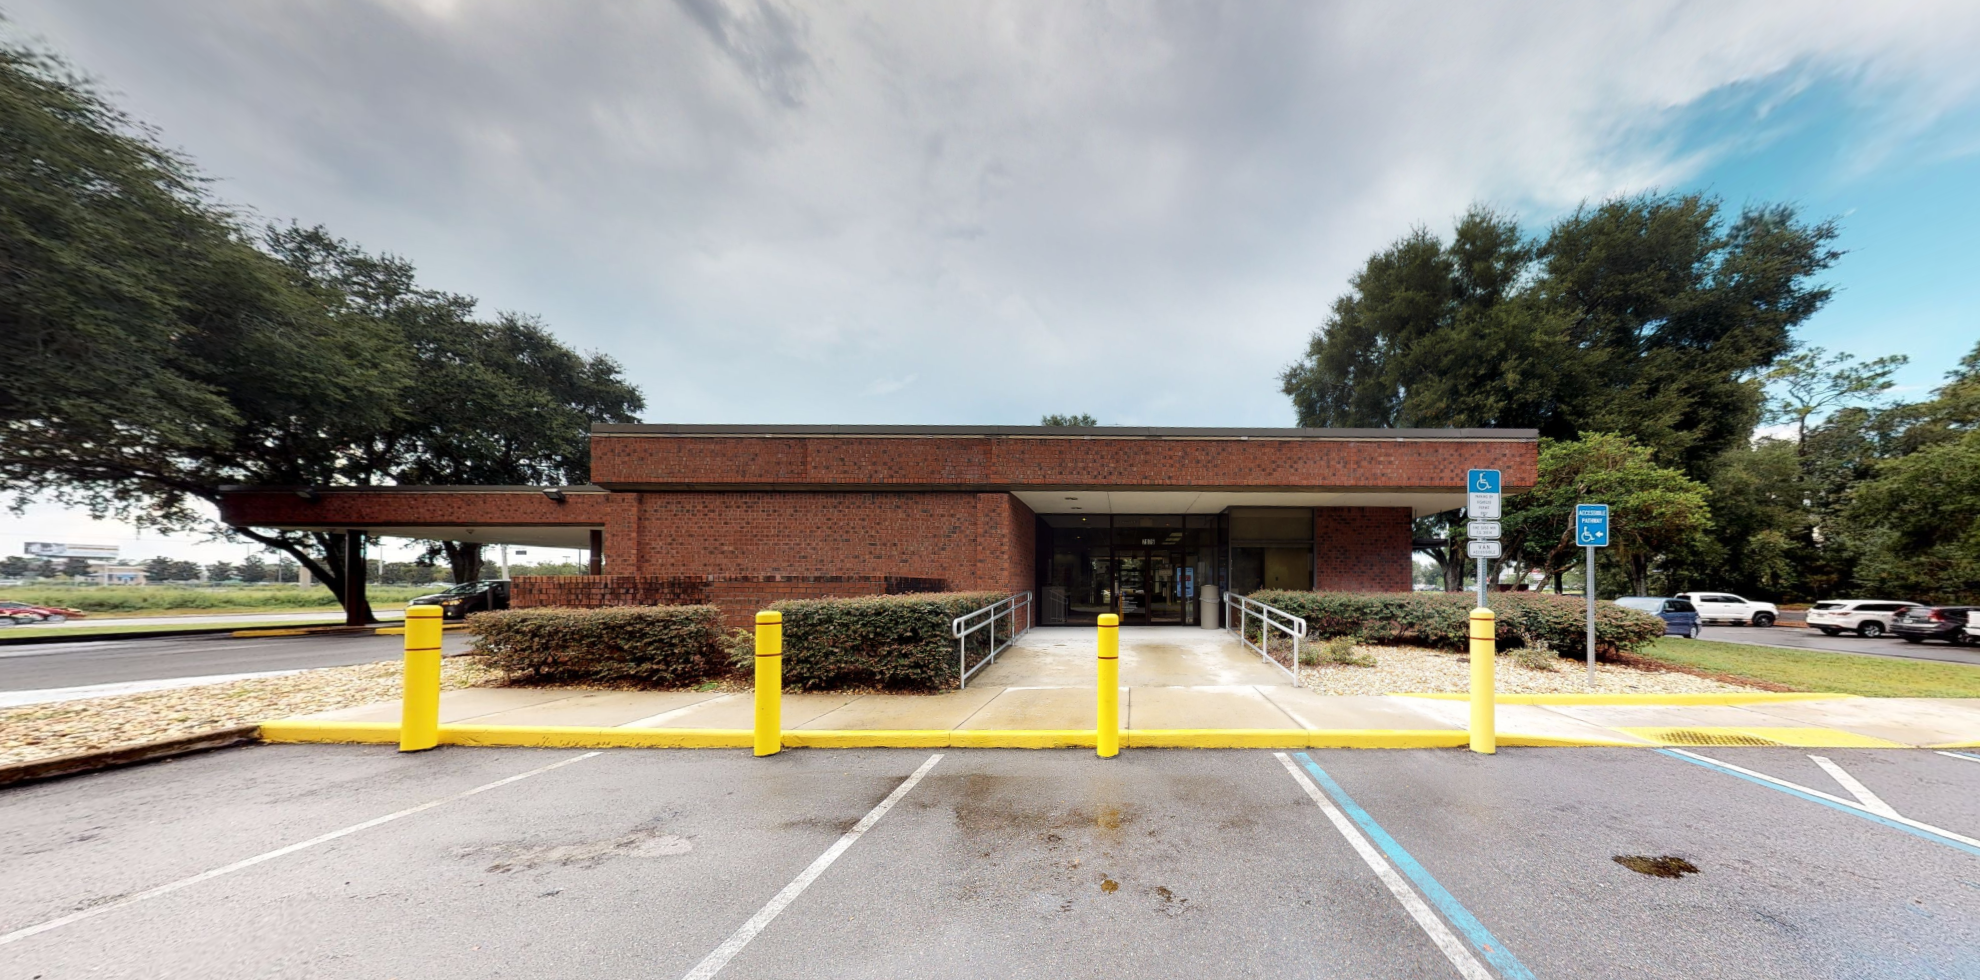 Bank of America financial center with drive-thru ATM and teller | 7975 SW State Rd 200, Ocala, FL 34476